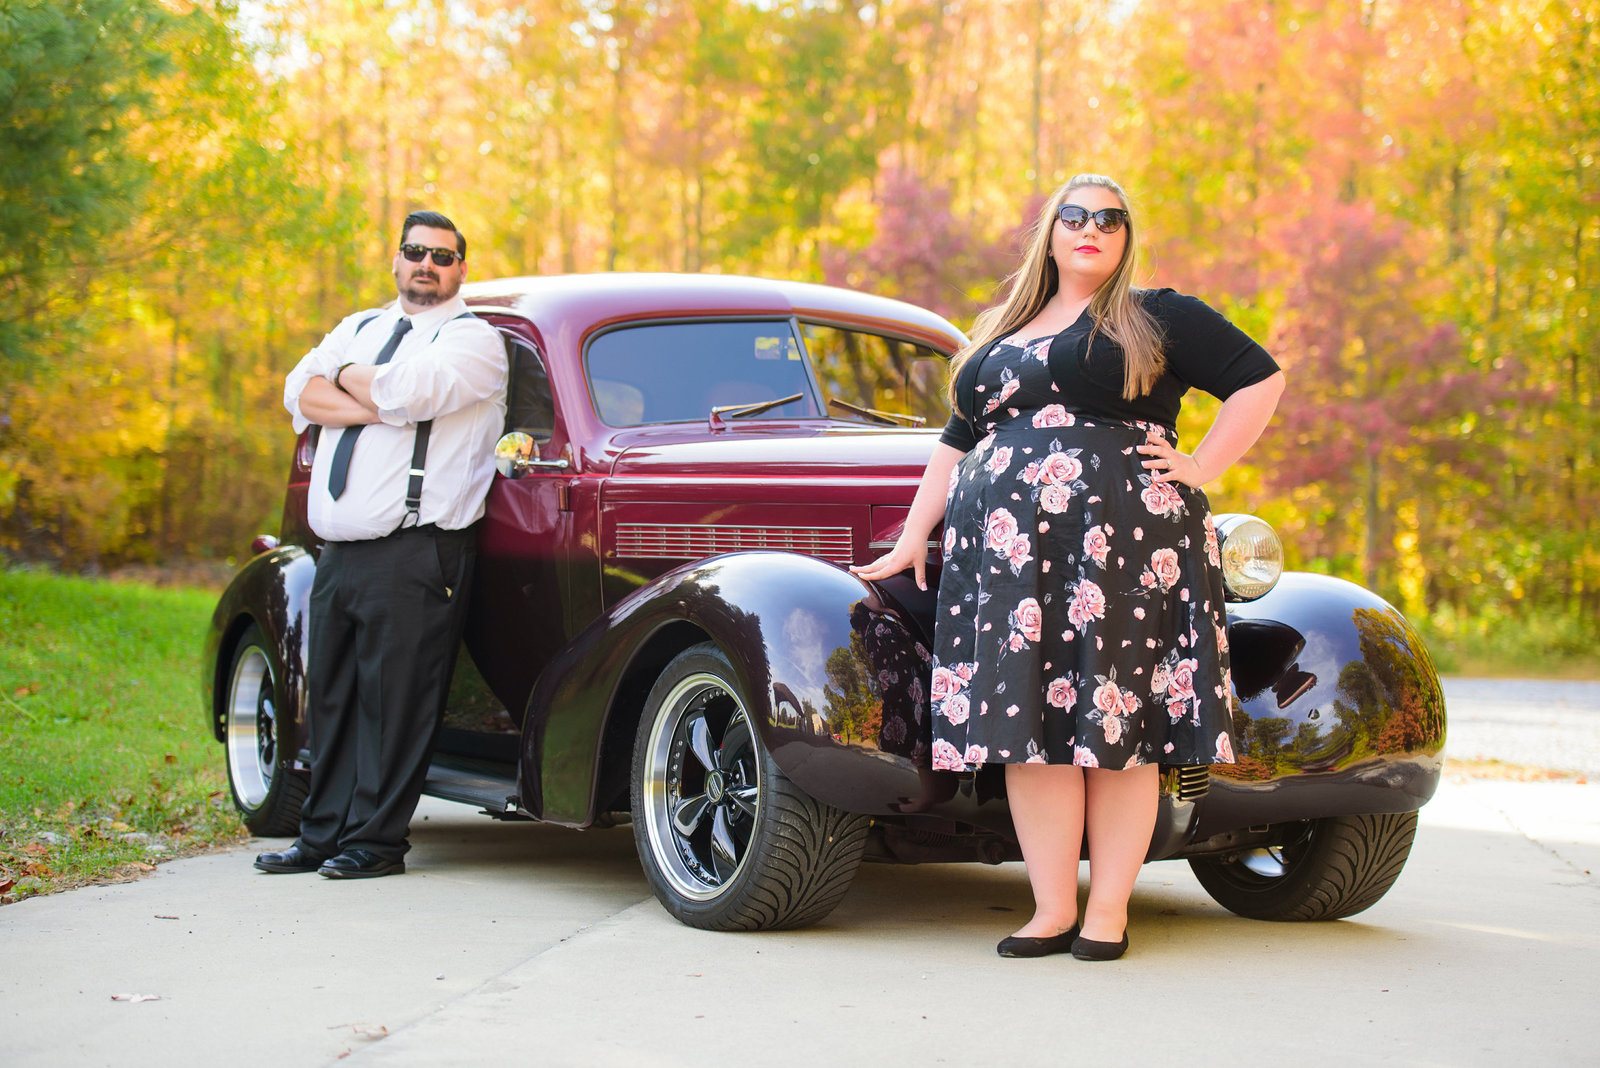 Retro_Pinup_Car_engagement_session_Nj007